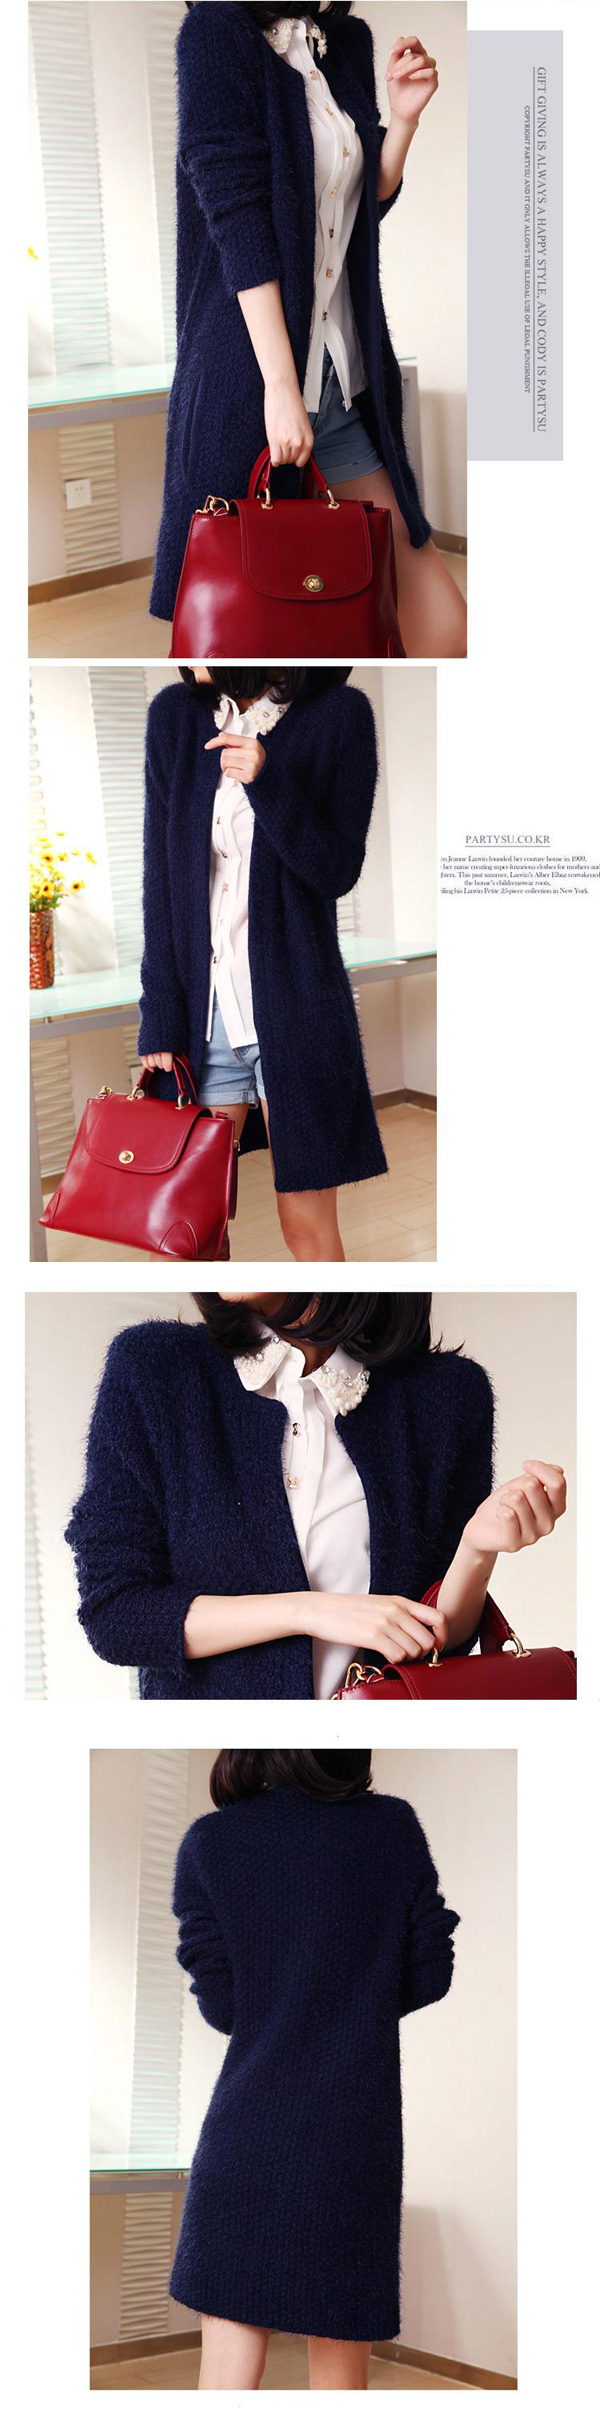 womens-mohair-knitting-cardigan-sweater-solid-color-korean-coat-D5